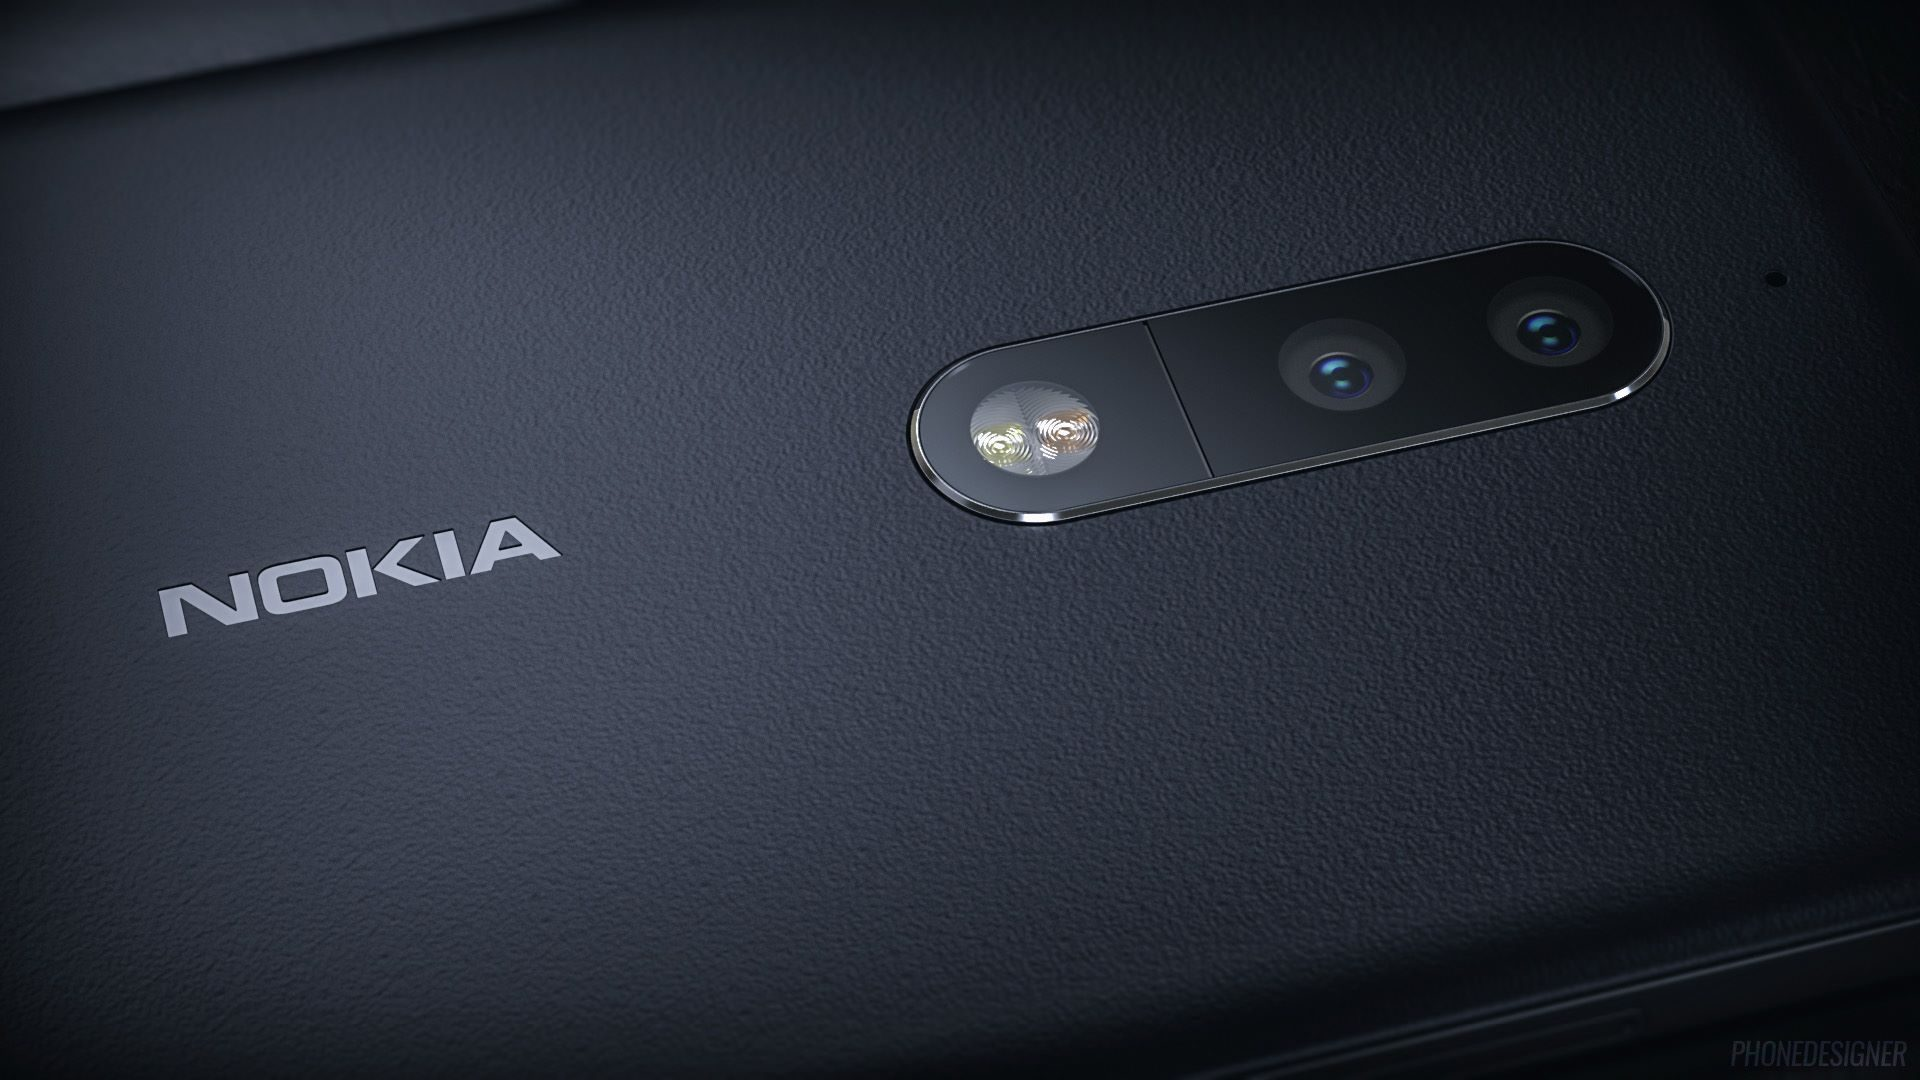 New Nokia smartphone will have more RAM